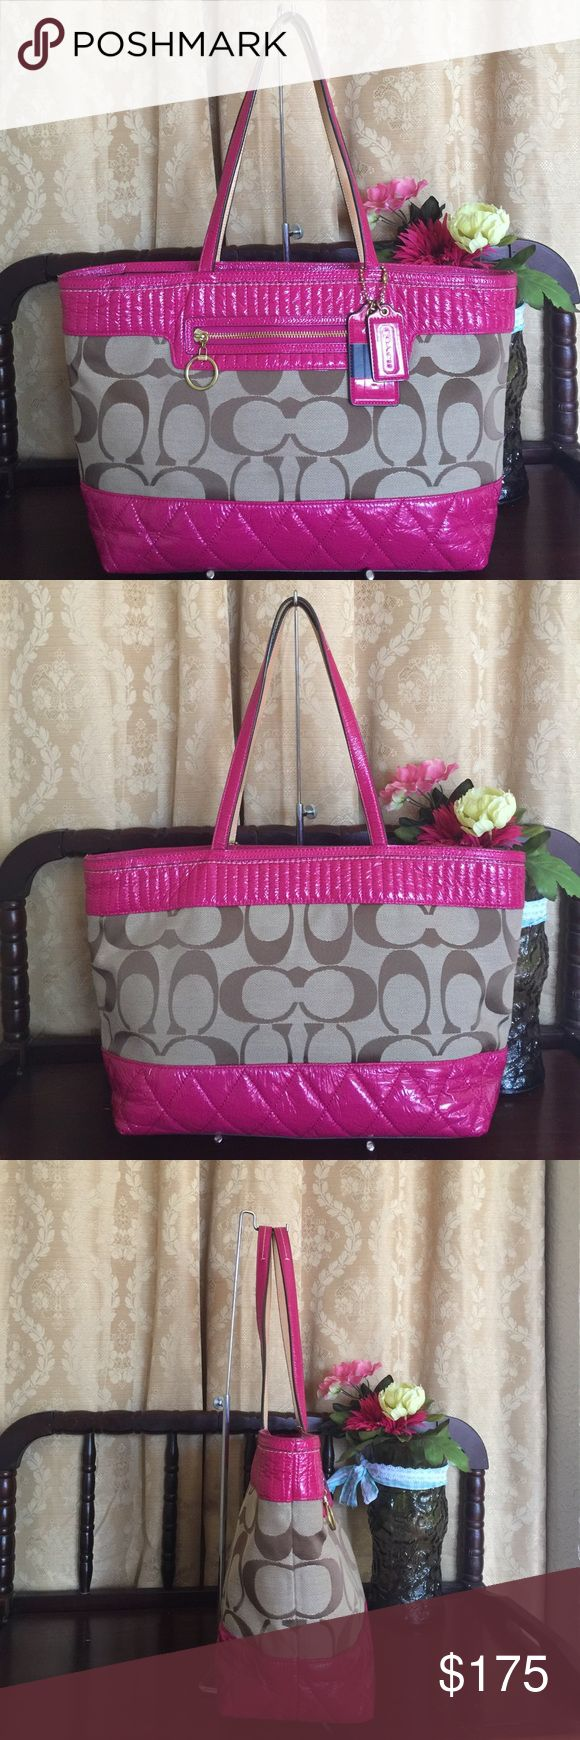 "Coach Poppy Signature poppy tote Coach Poppy Signature Canvas Quilted Pewter Metallic Large Tote Shoulder Bag #18676,color pink ruby/khaki, Signature fabric, framed top and bottom with Liquid Gloss, a quiltedmaterial opulent look of lacquer. a zip-top closure keeps contents safely inside. Signature fabric with bonded fabric trimInside zip, cell phone and multifunction pockets. Zip-top closure, fabric lining. Handles with 9"" drop. Outside pocket. Measure approx:16 1/2"" (L) x 10"" (H) x 5"" (W)…"